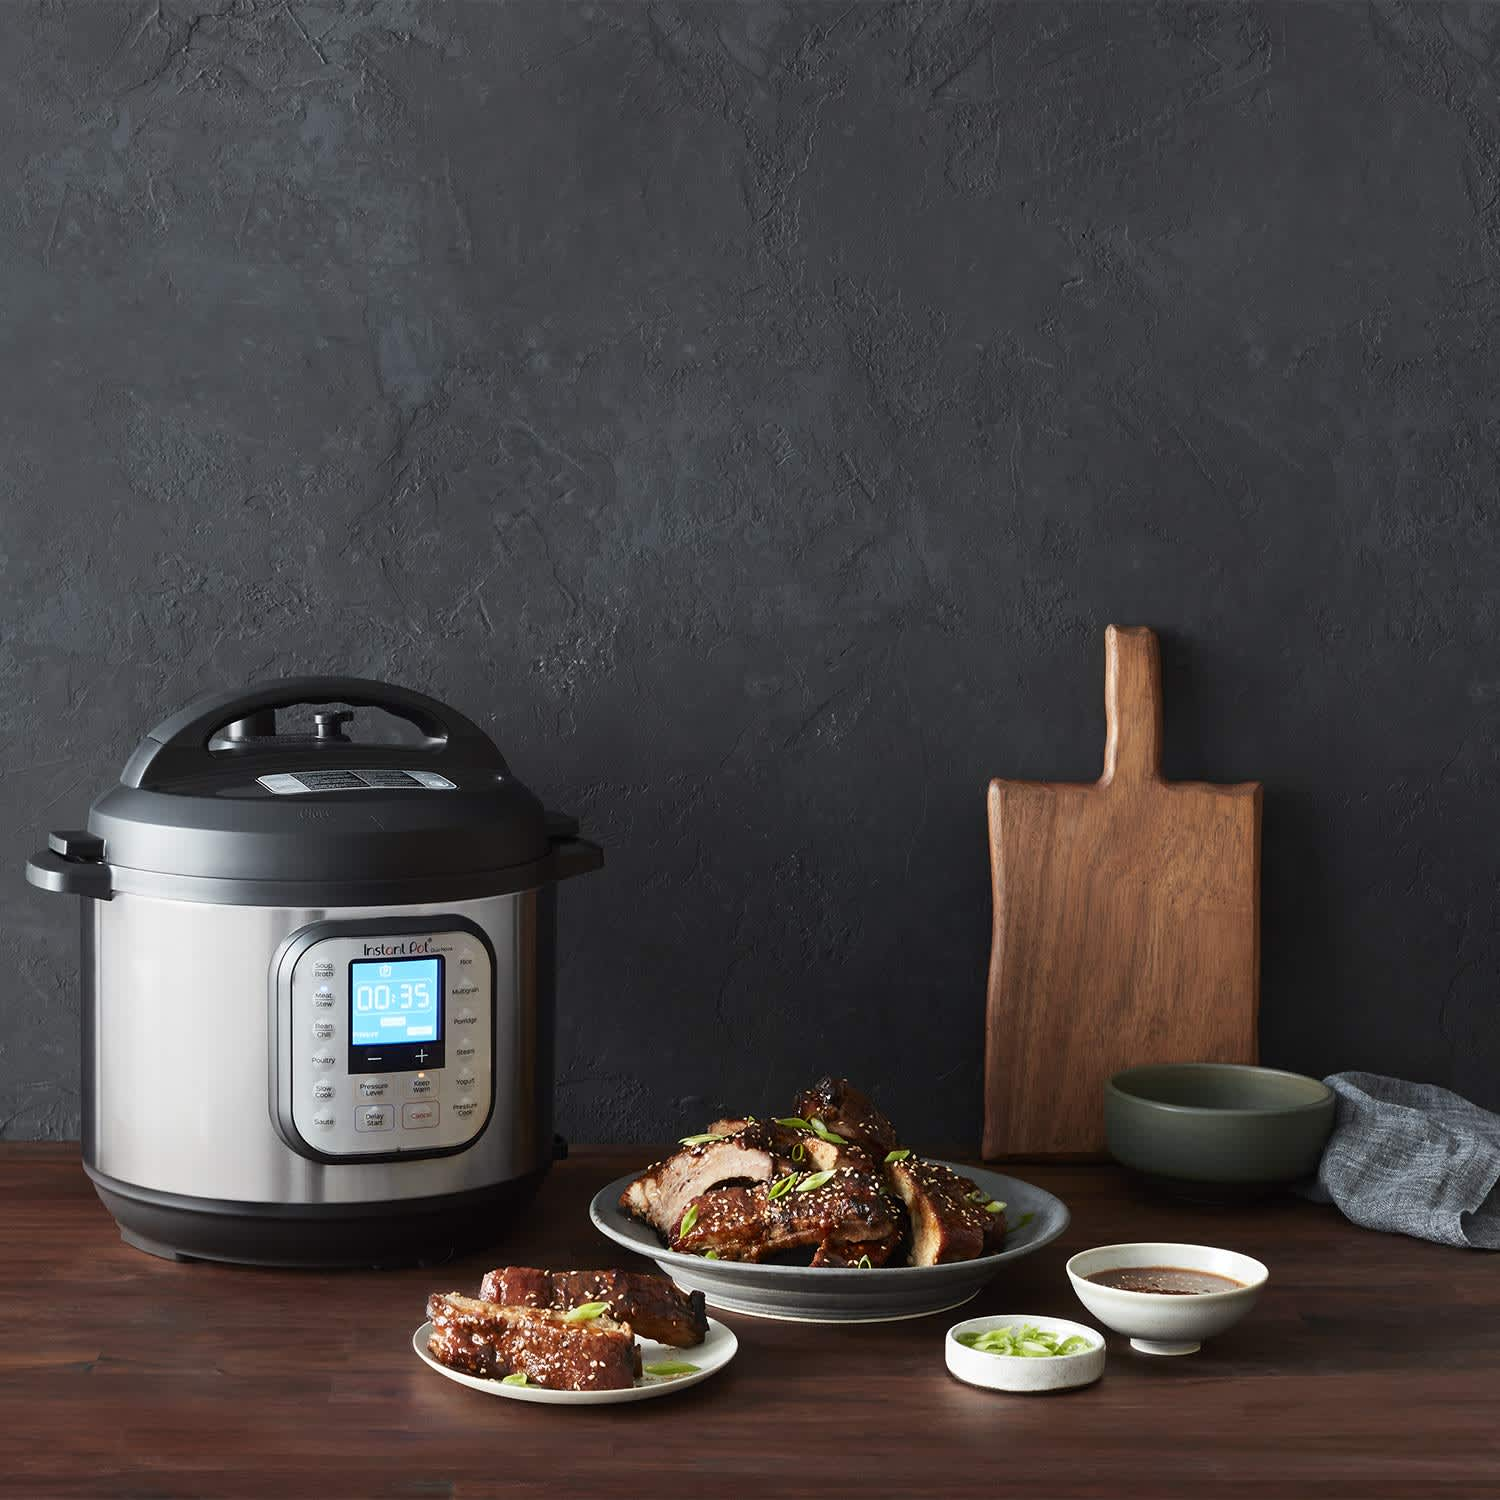 Instant Pot Just Released a New Model! Here's What's Different About It